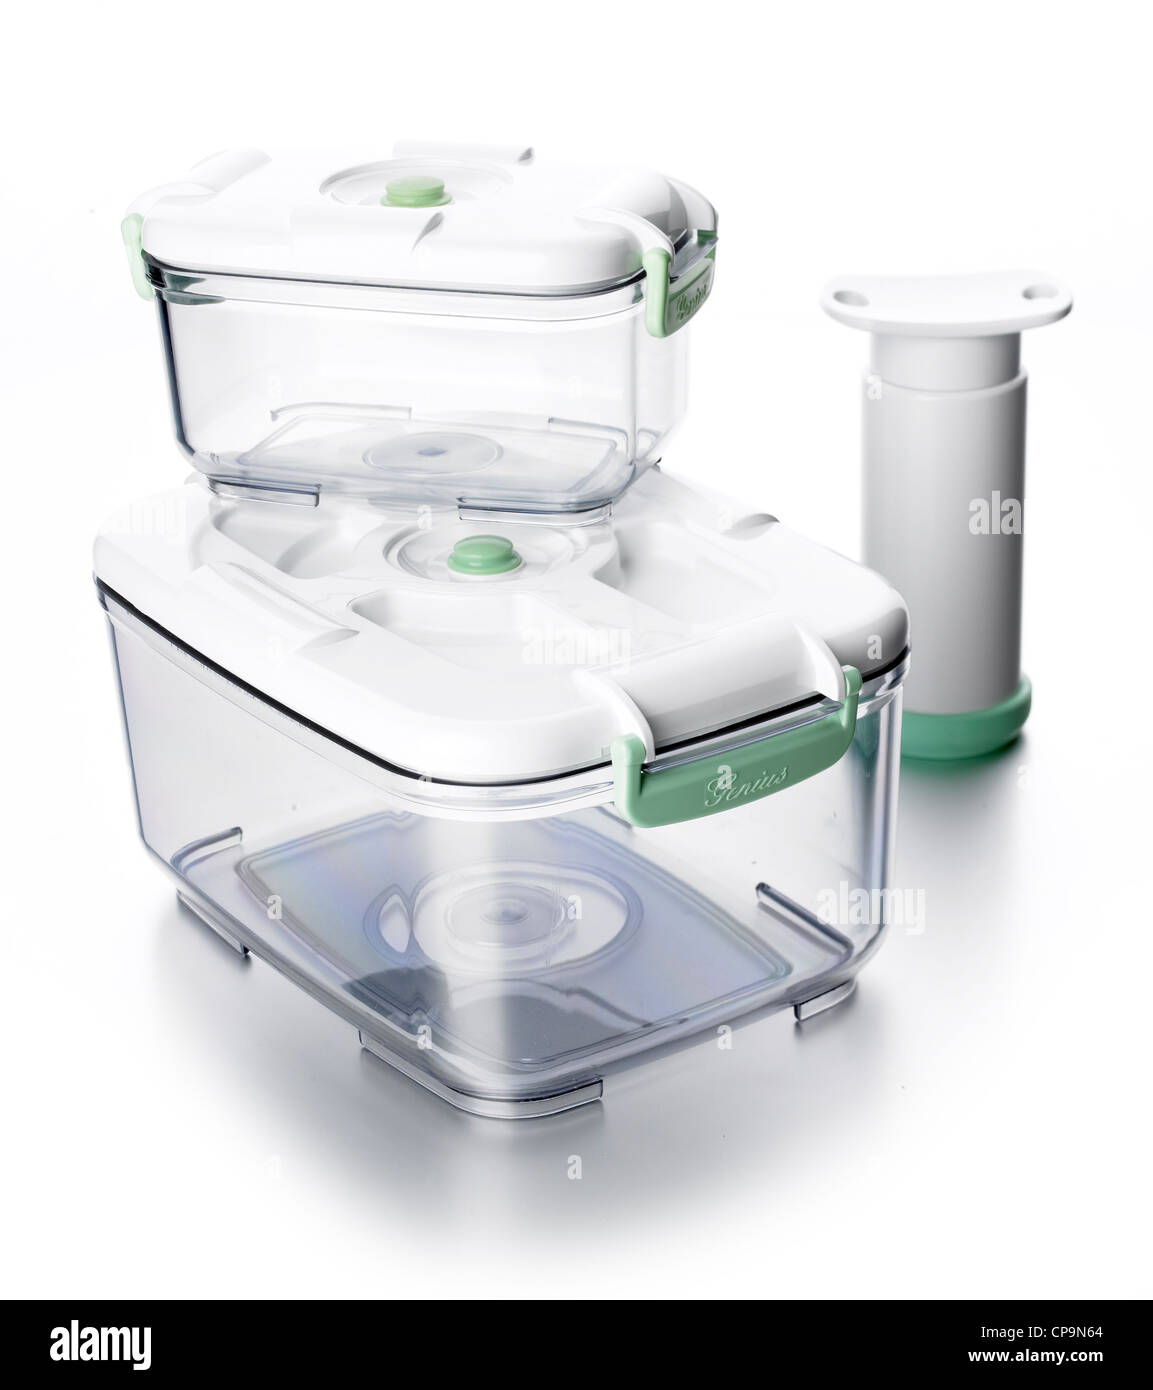 vacuum sealed left over boxes - Stock Image